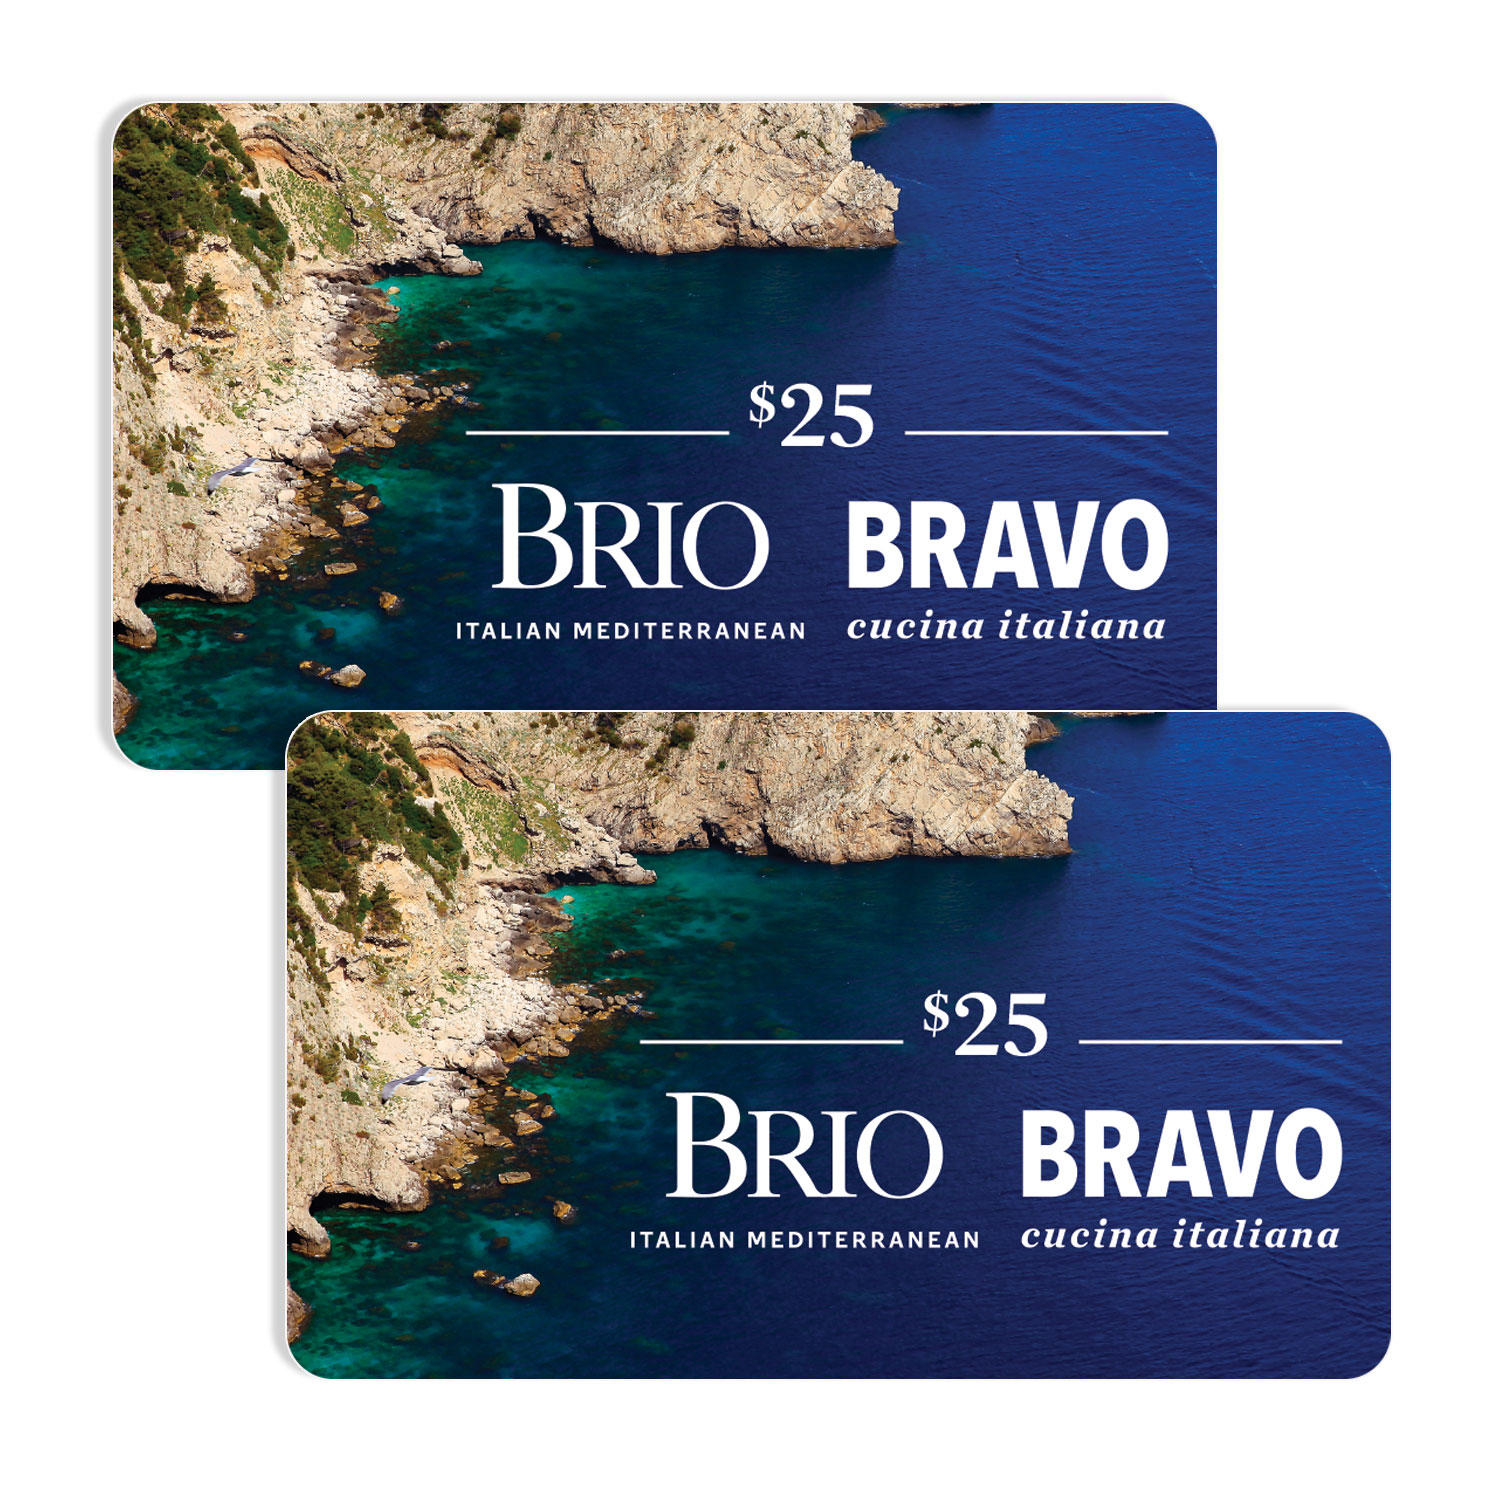 $50 (2 x $25) Bravo Brio Restaurant Group Gift Cards